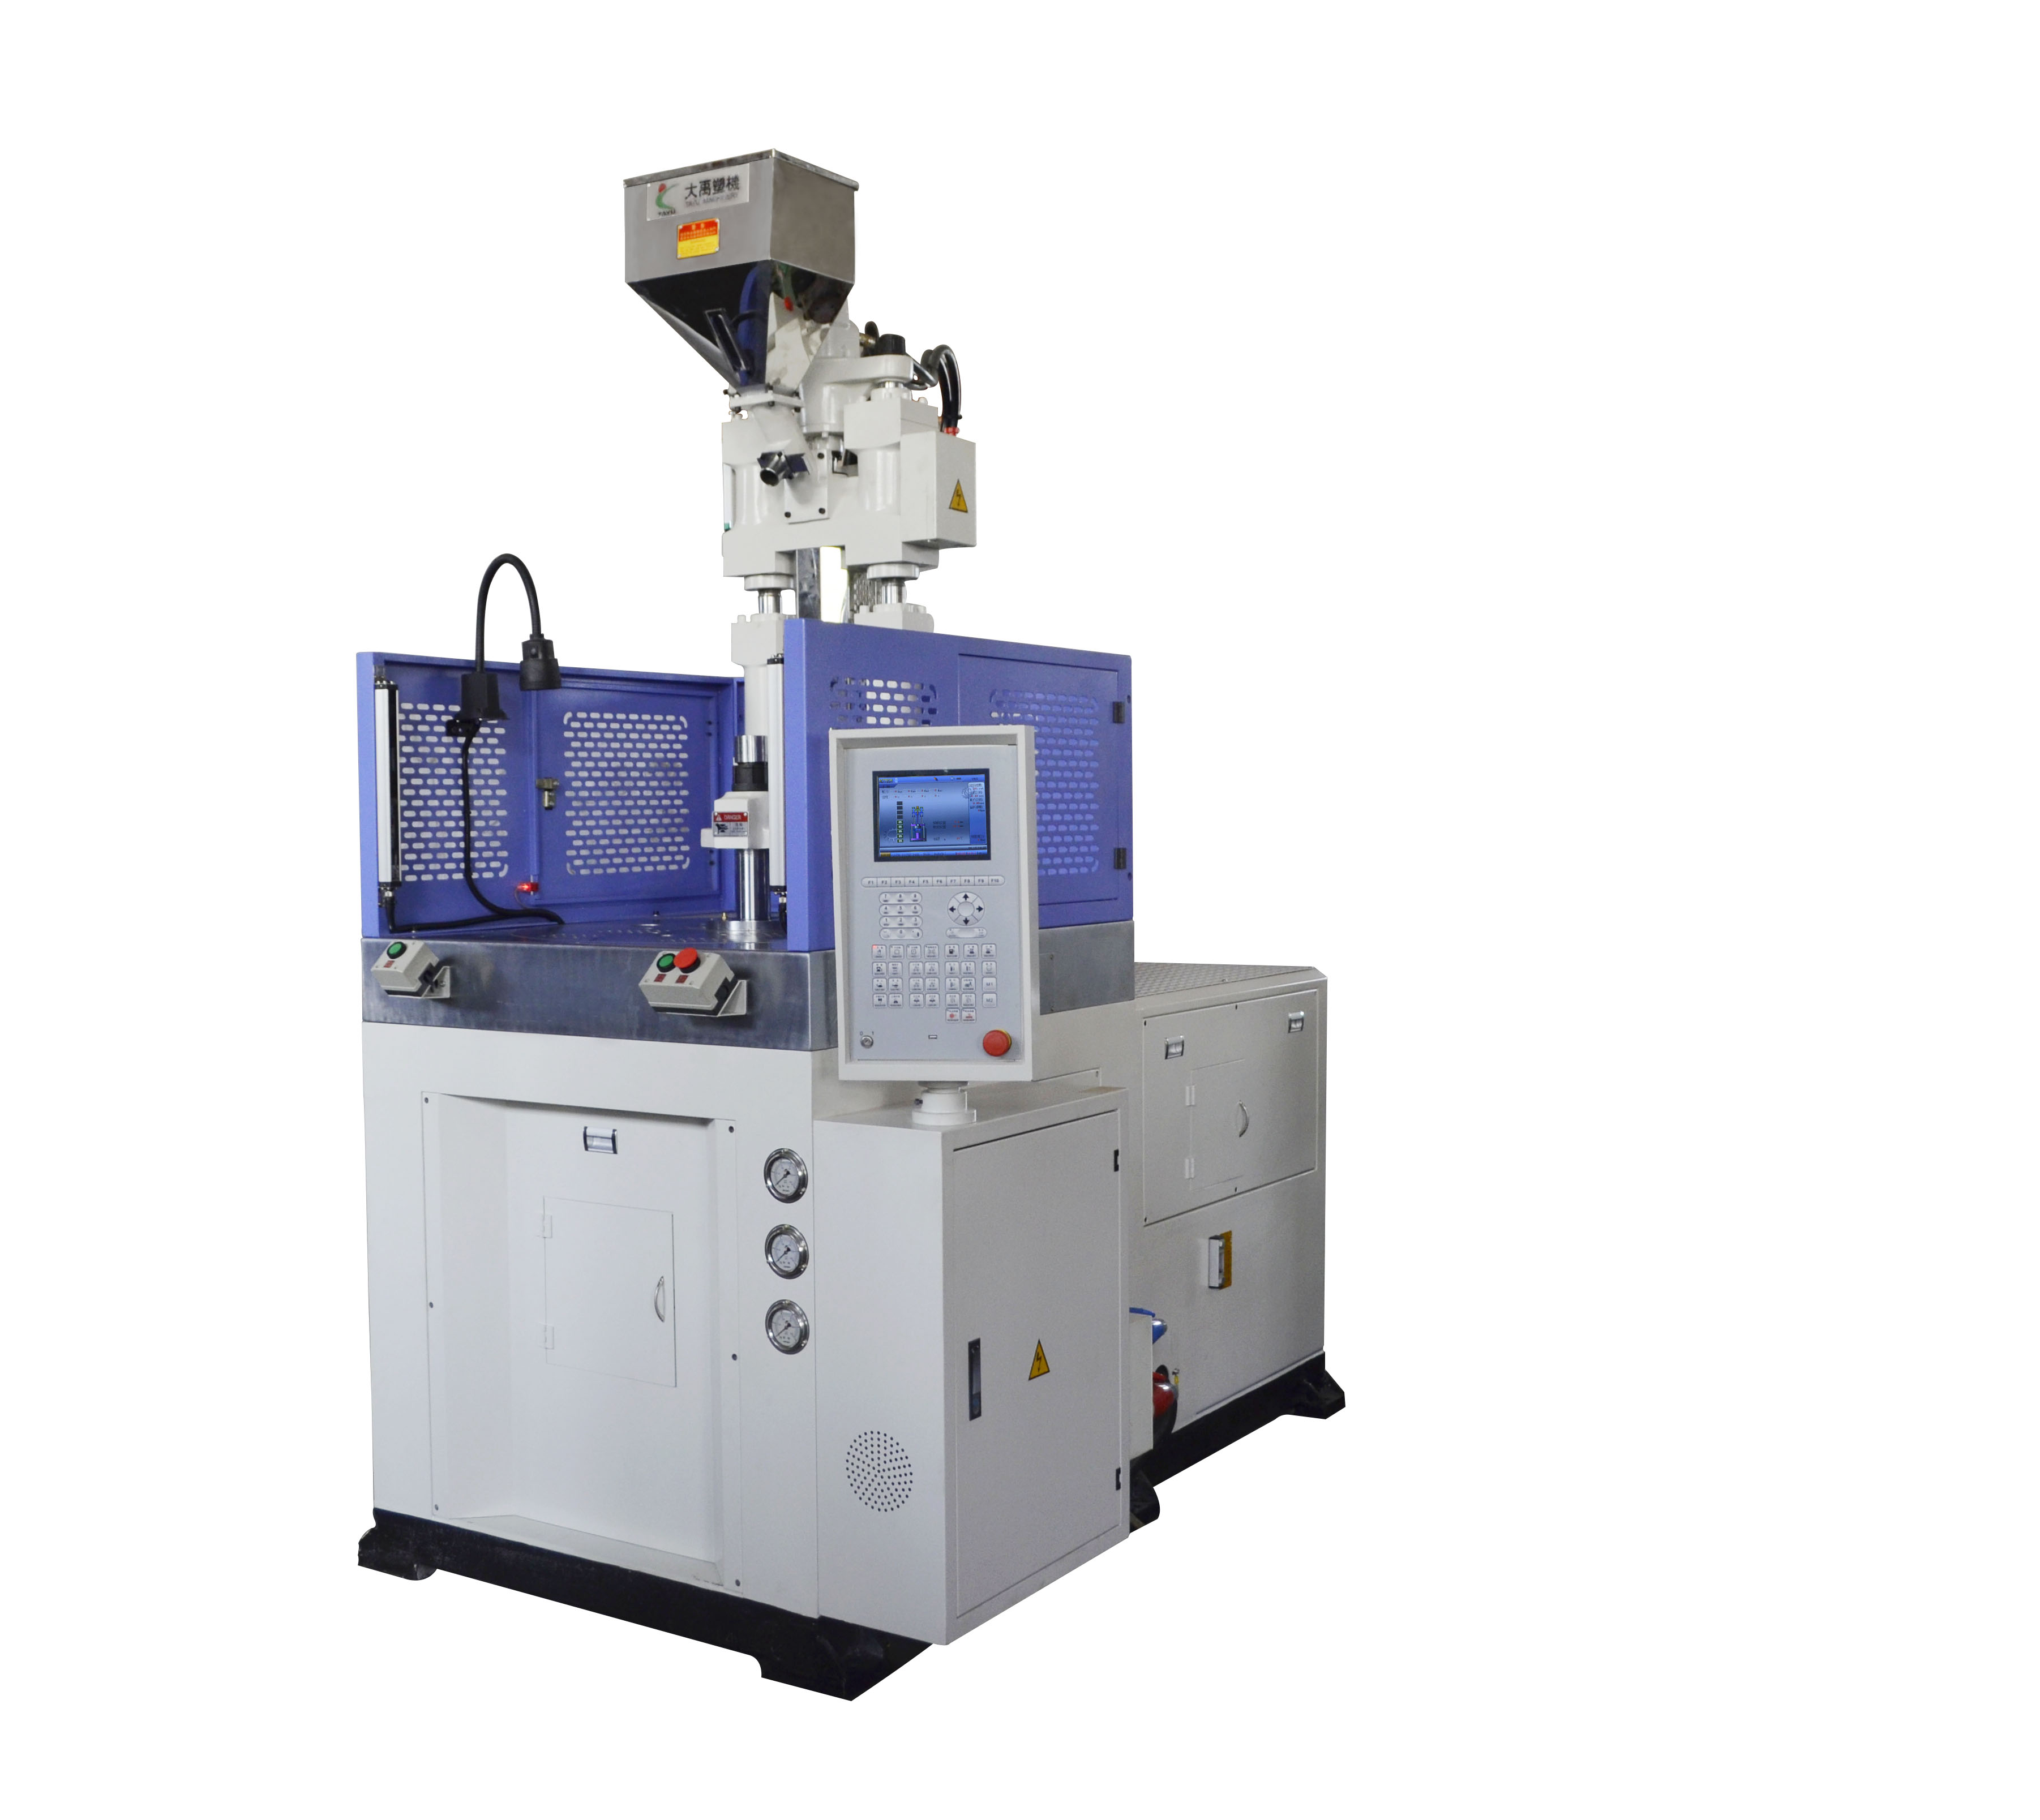 TY-550.2R Rotary injection molding machine